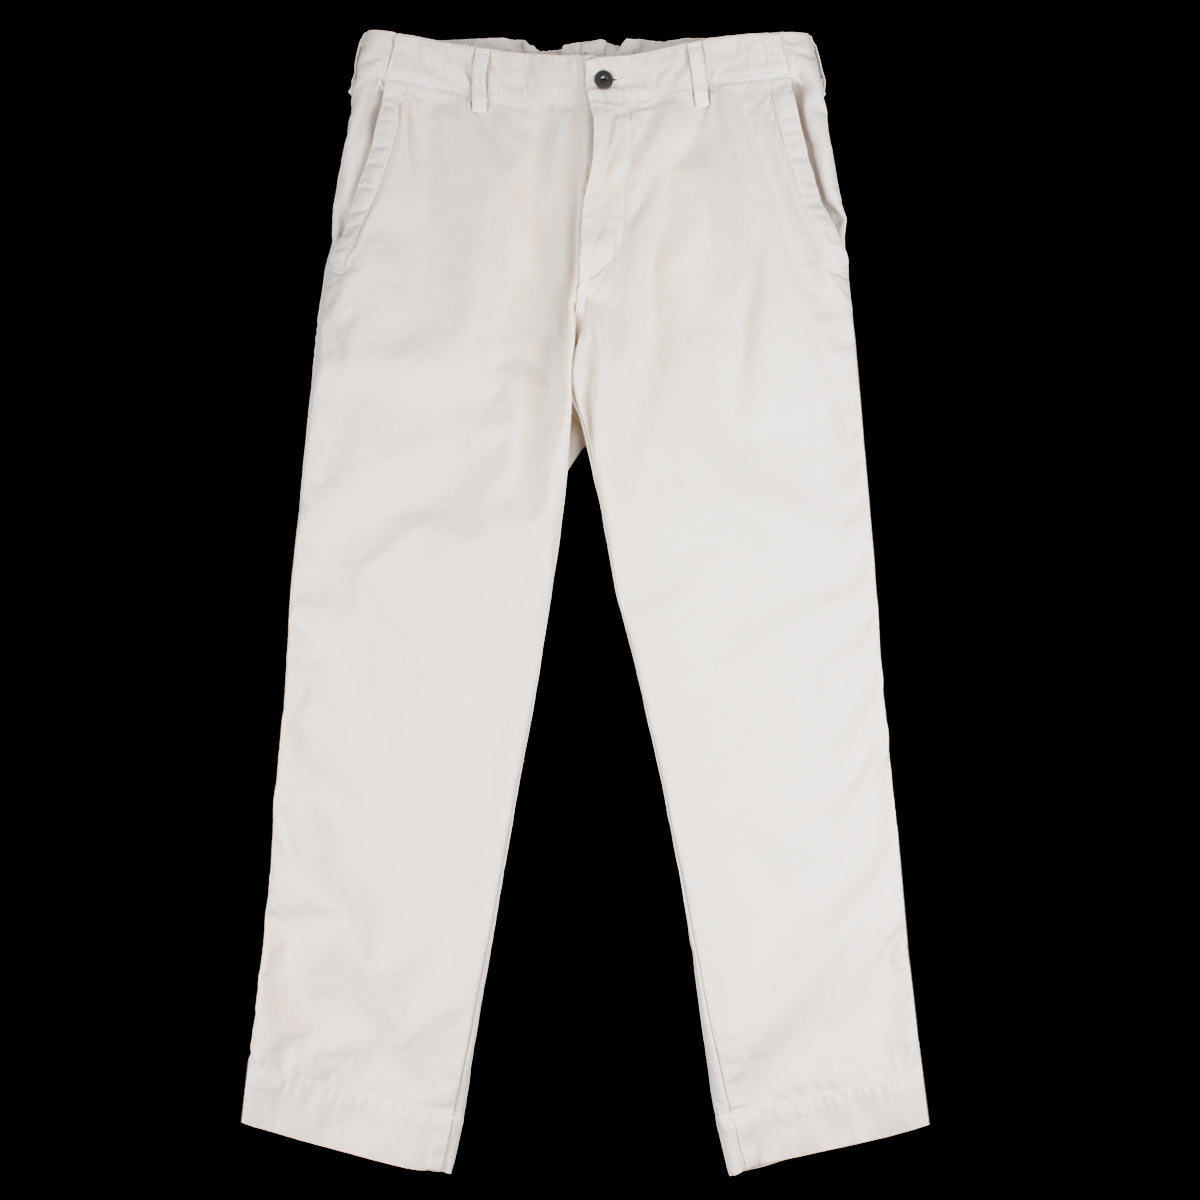 45301d9c3b Home Work - Twill Weekend Worker Pant in Stone - UNIONMADE